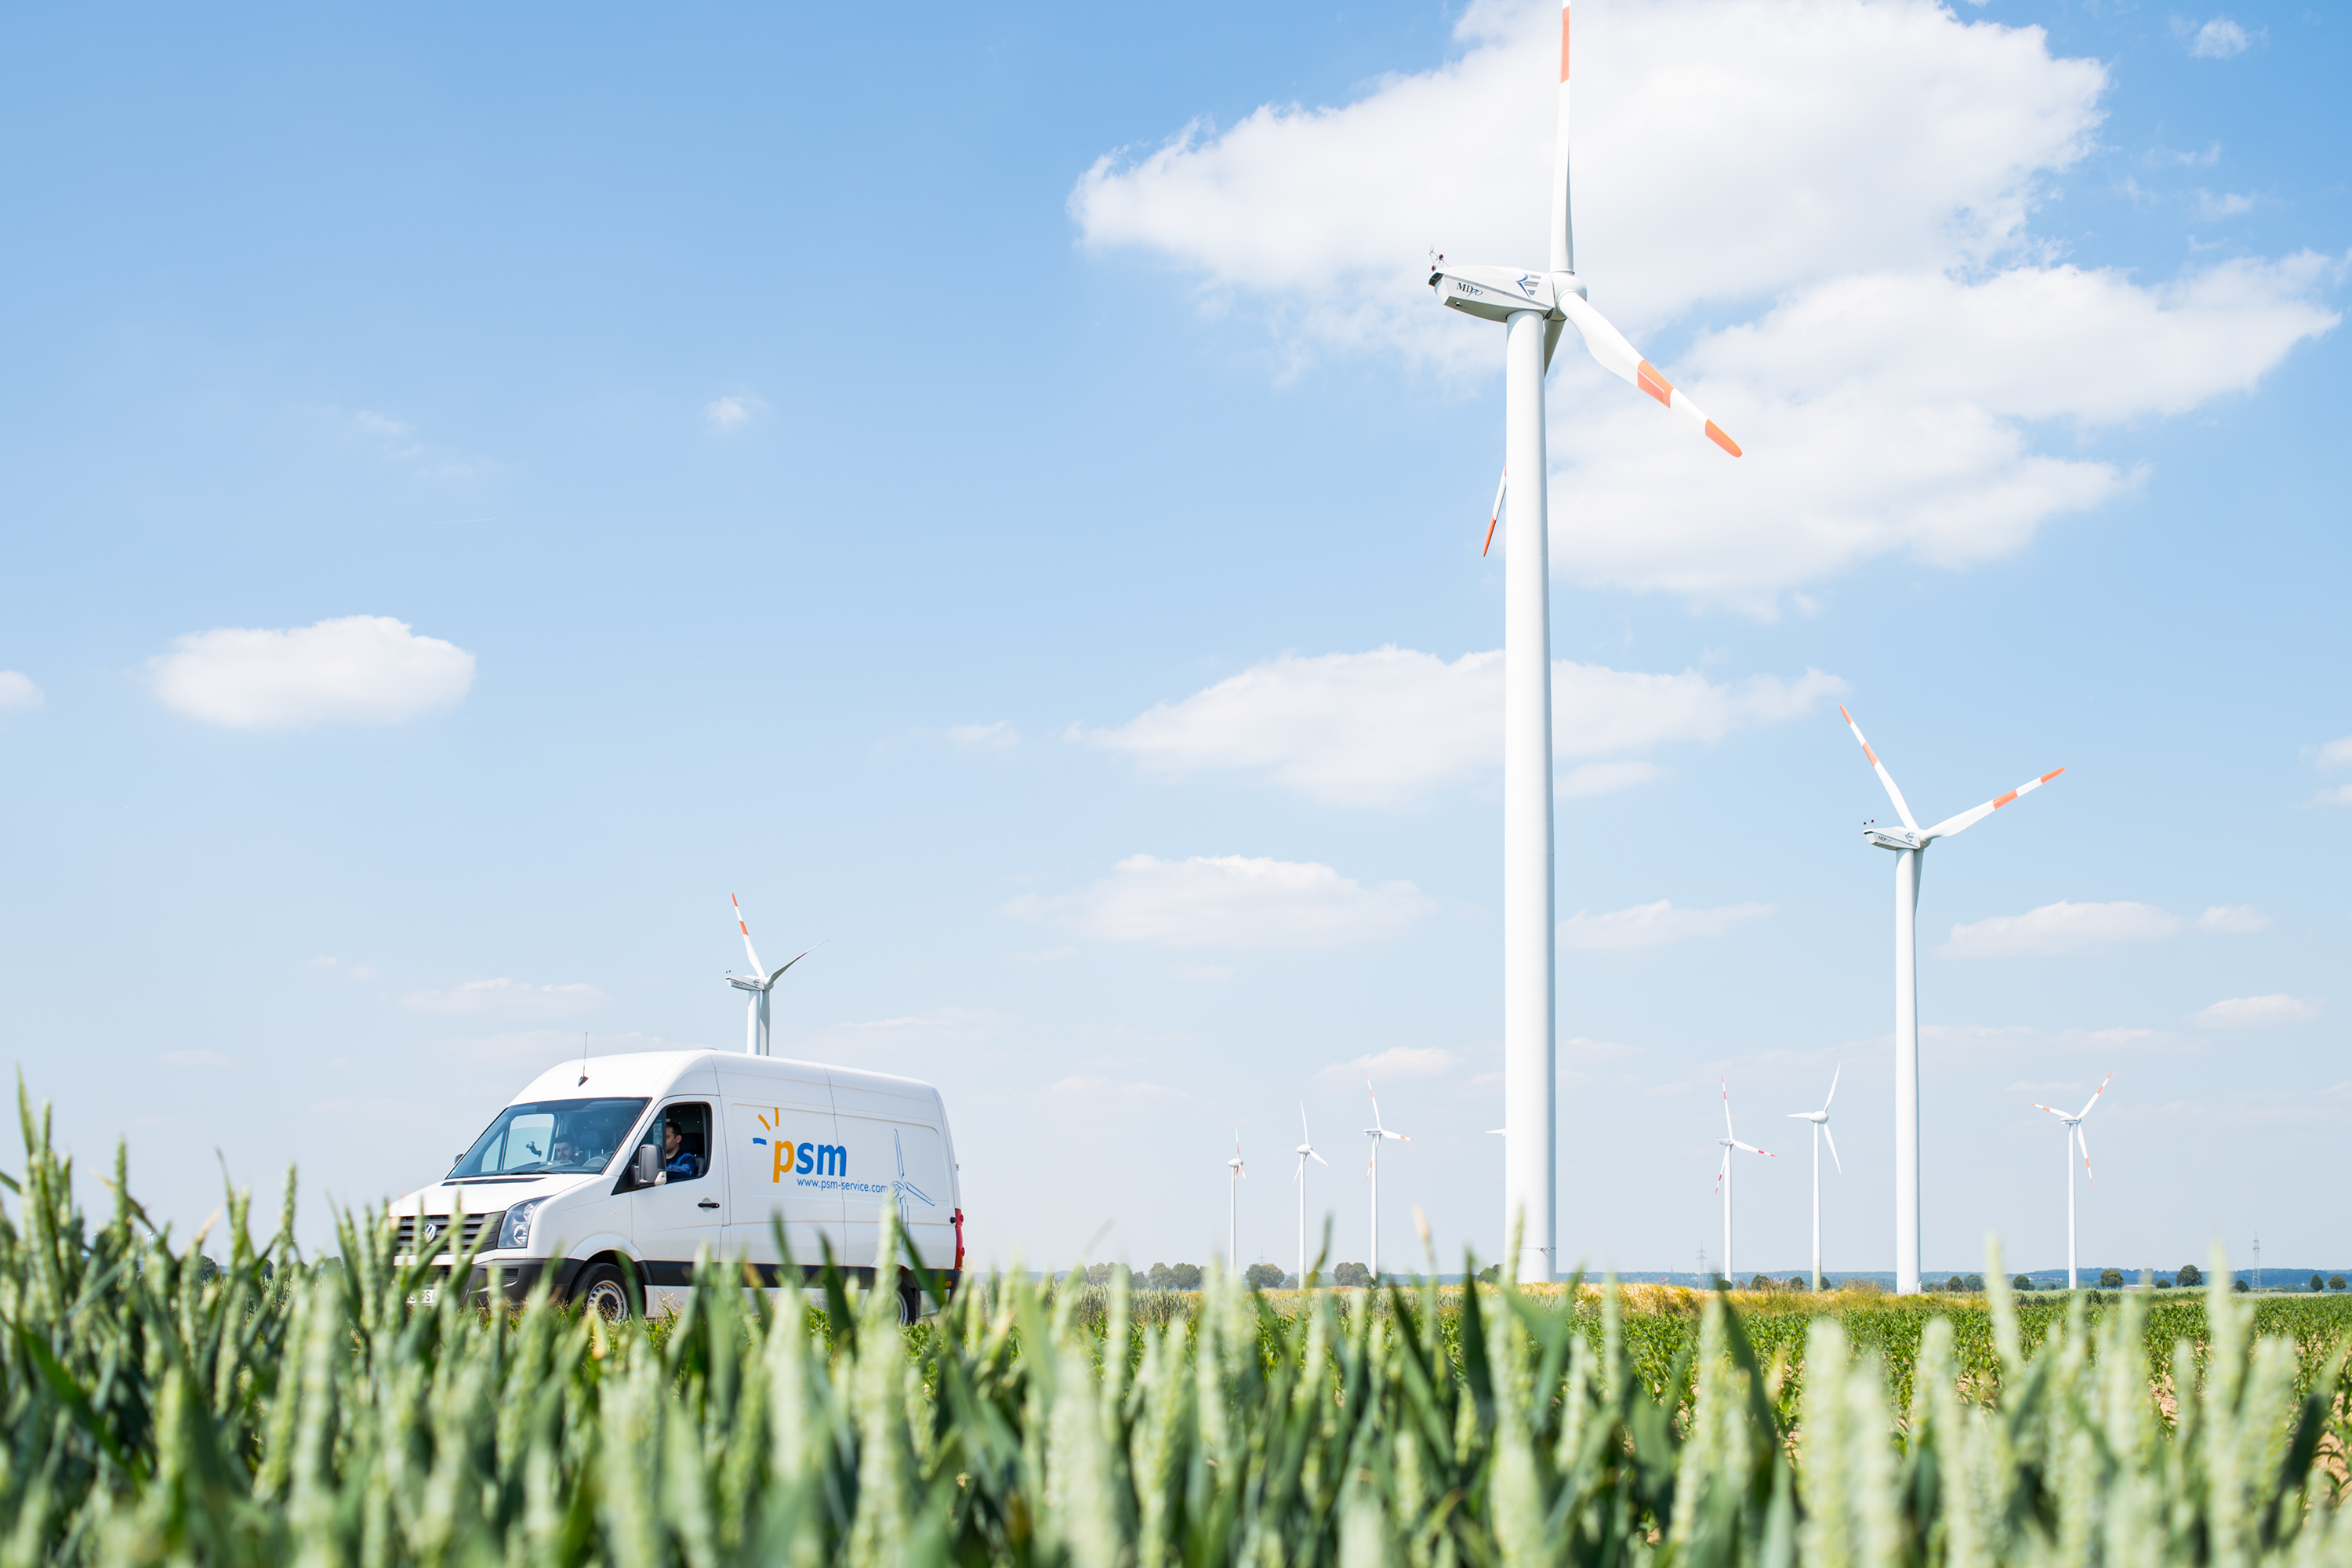 Maintenance and service especially for Dewind Senvion repower